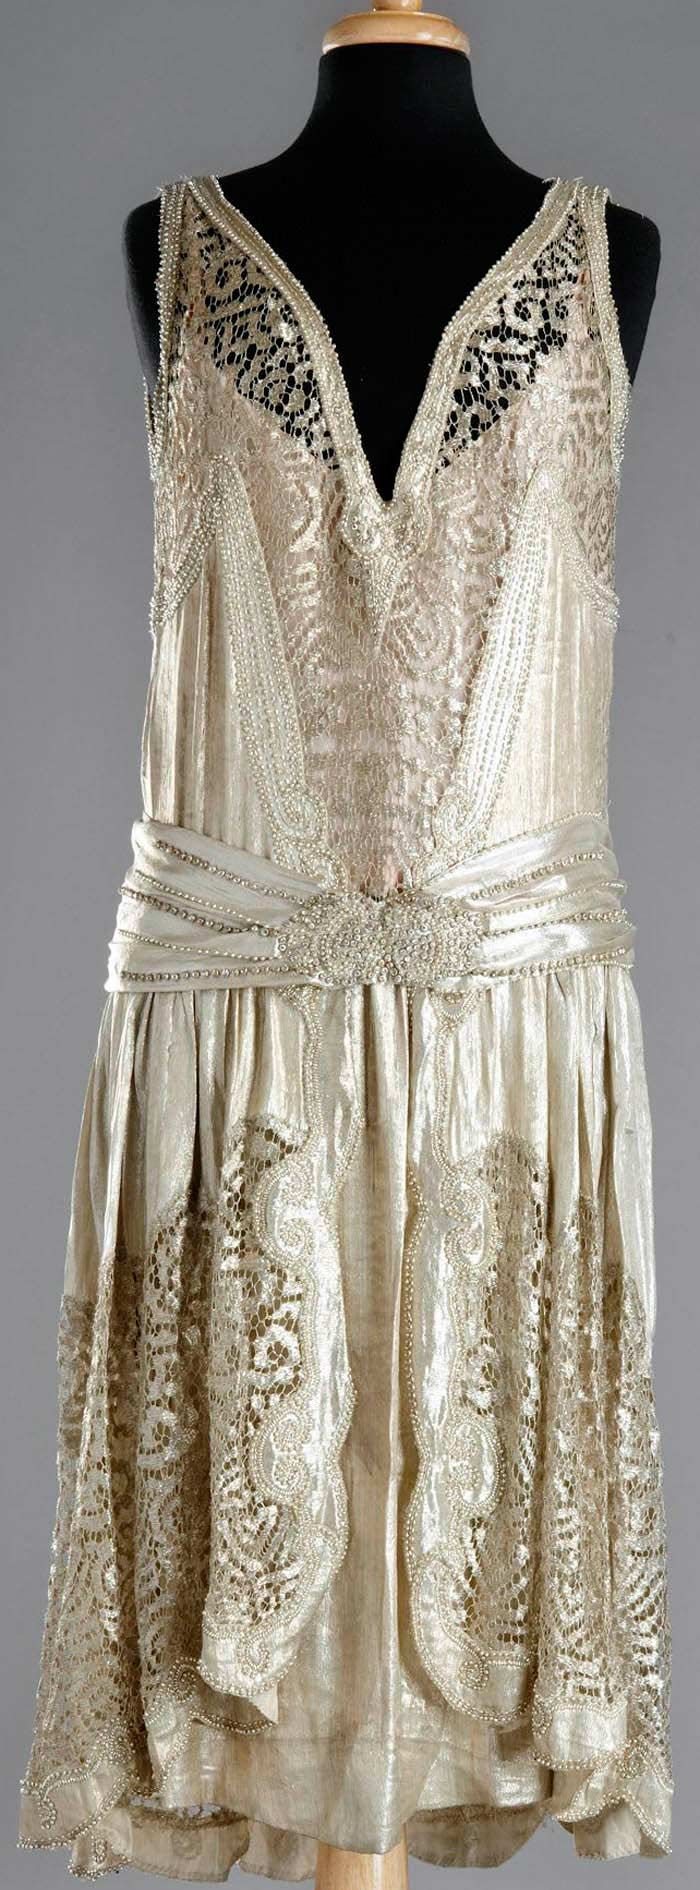 Charleston dress, 1920 - stunning detail